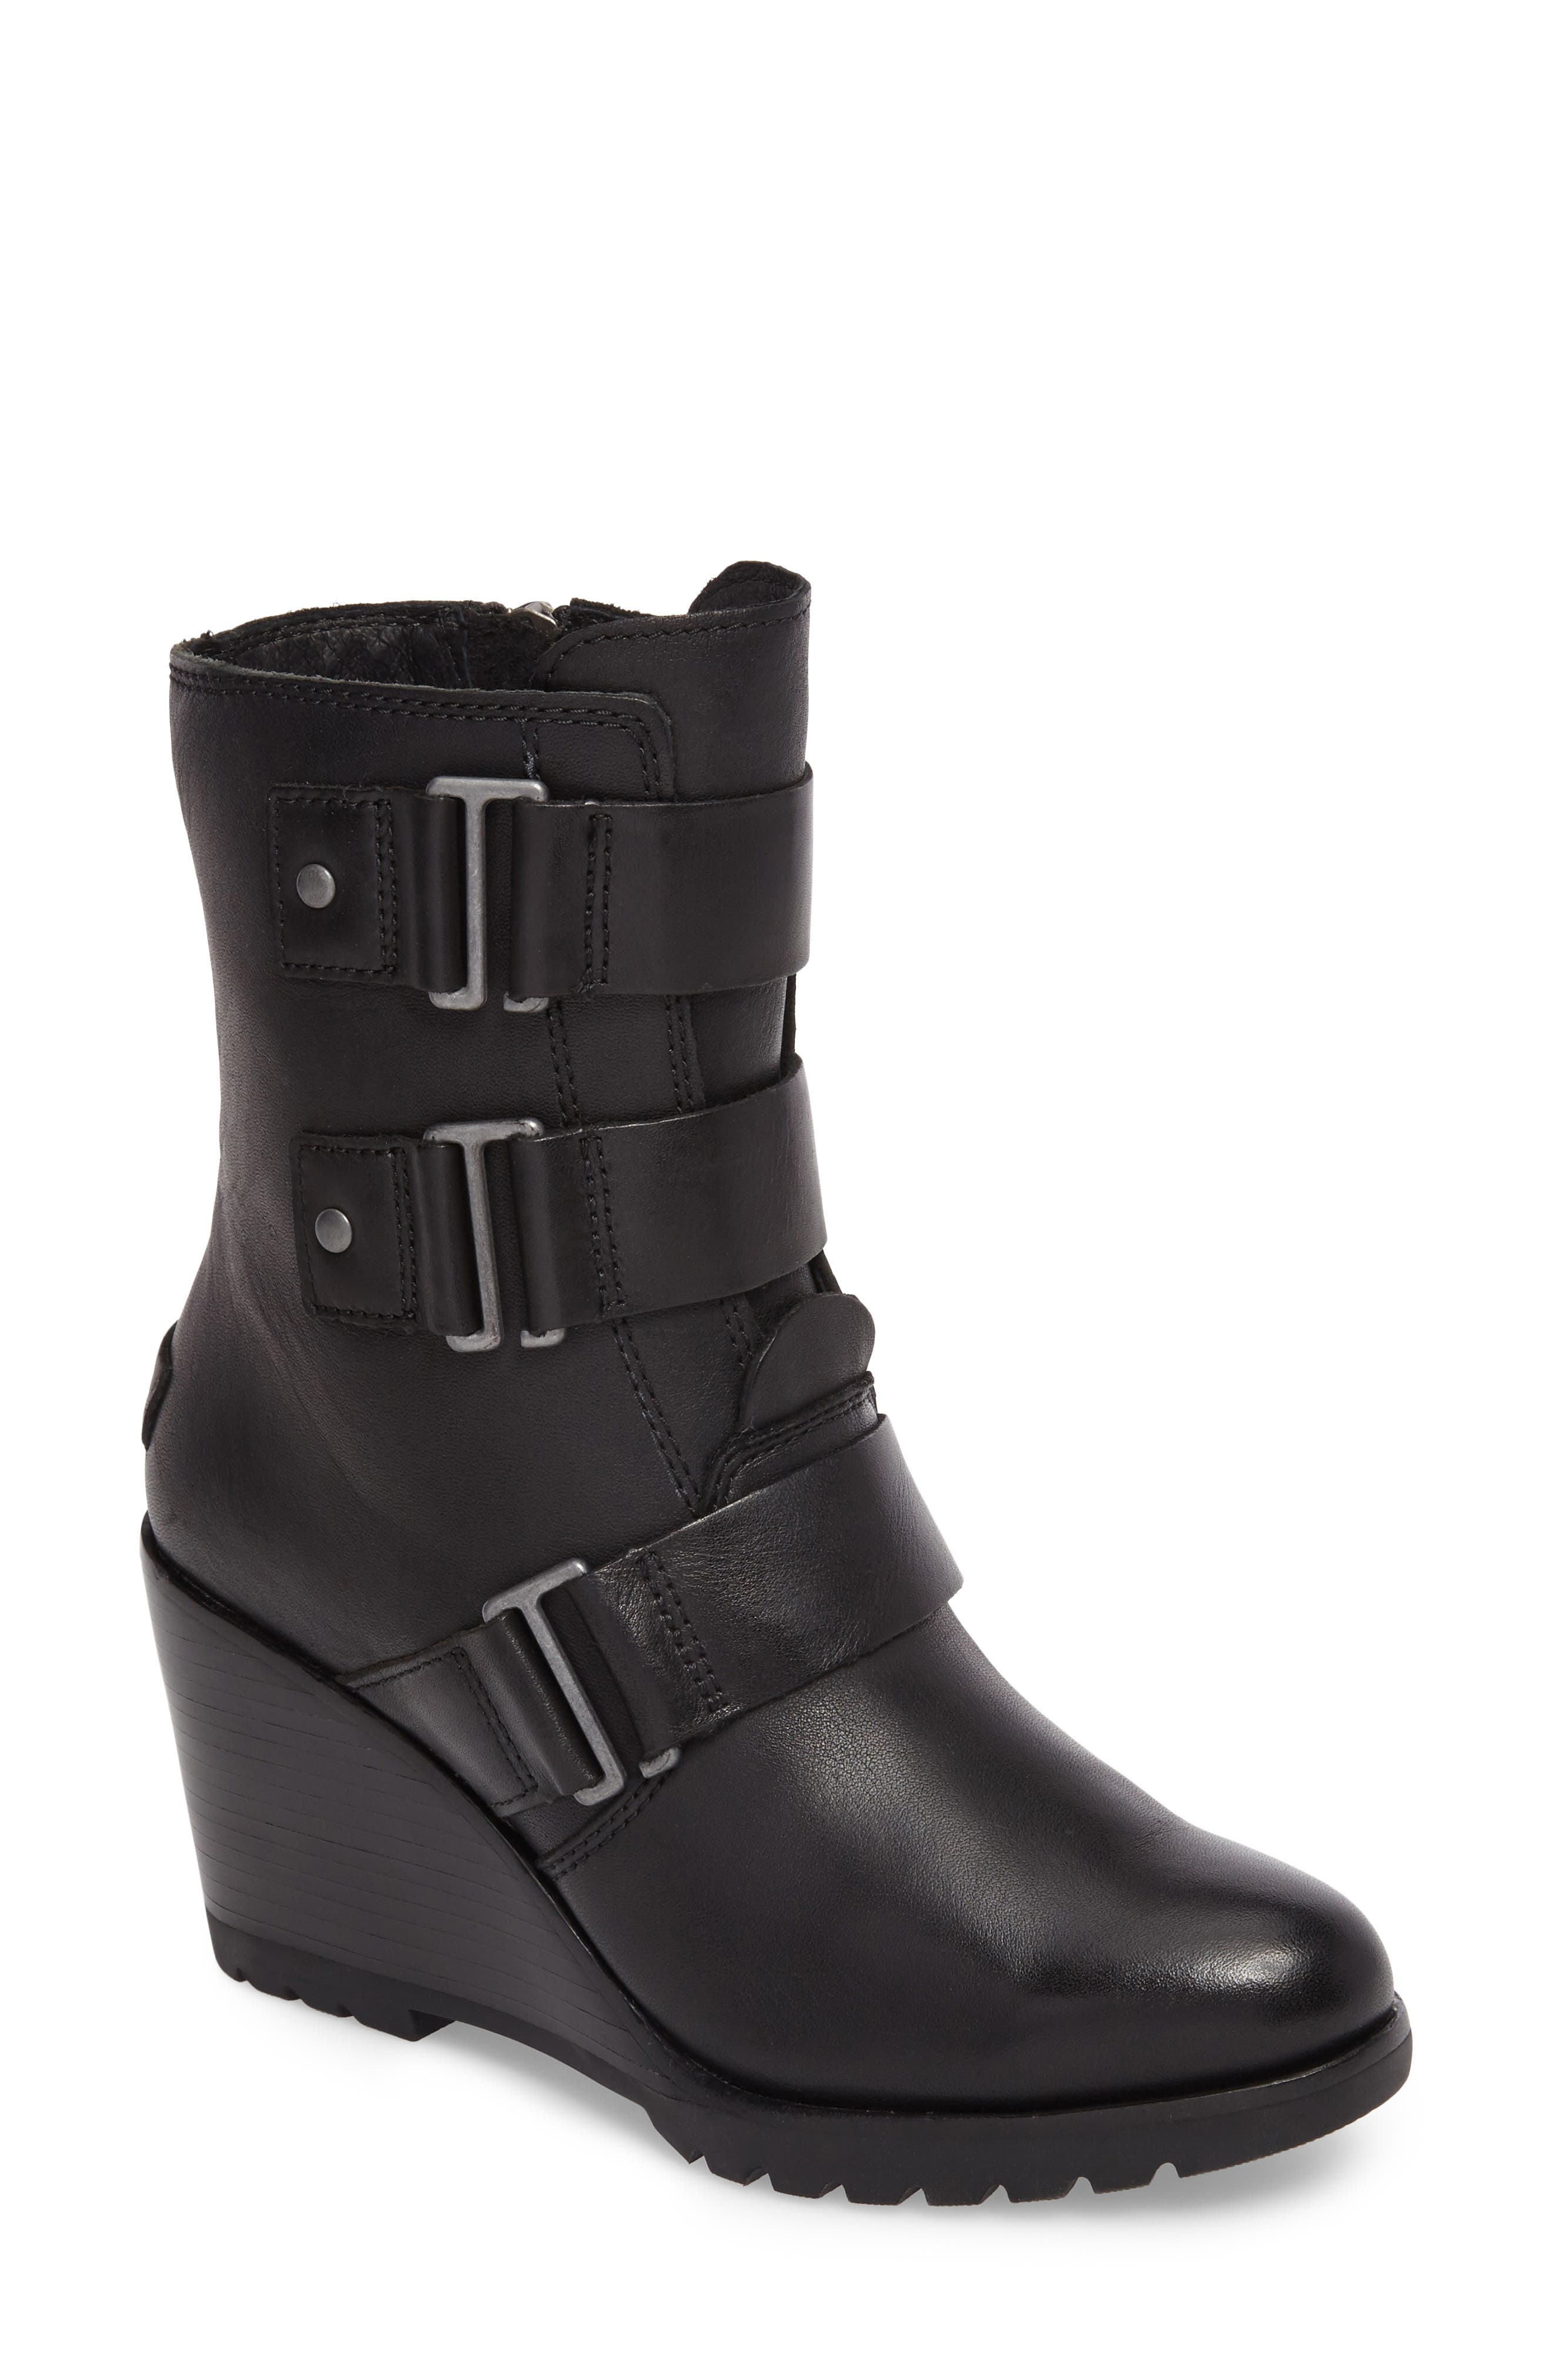 After Hours Waterproof Bootie,                             Main thumbnail 1, color,